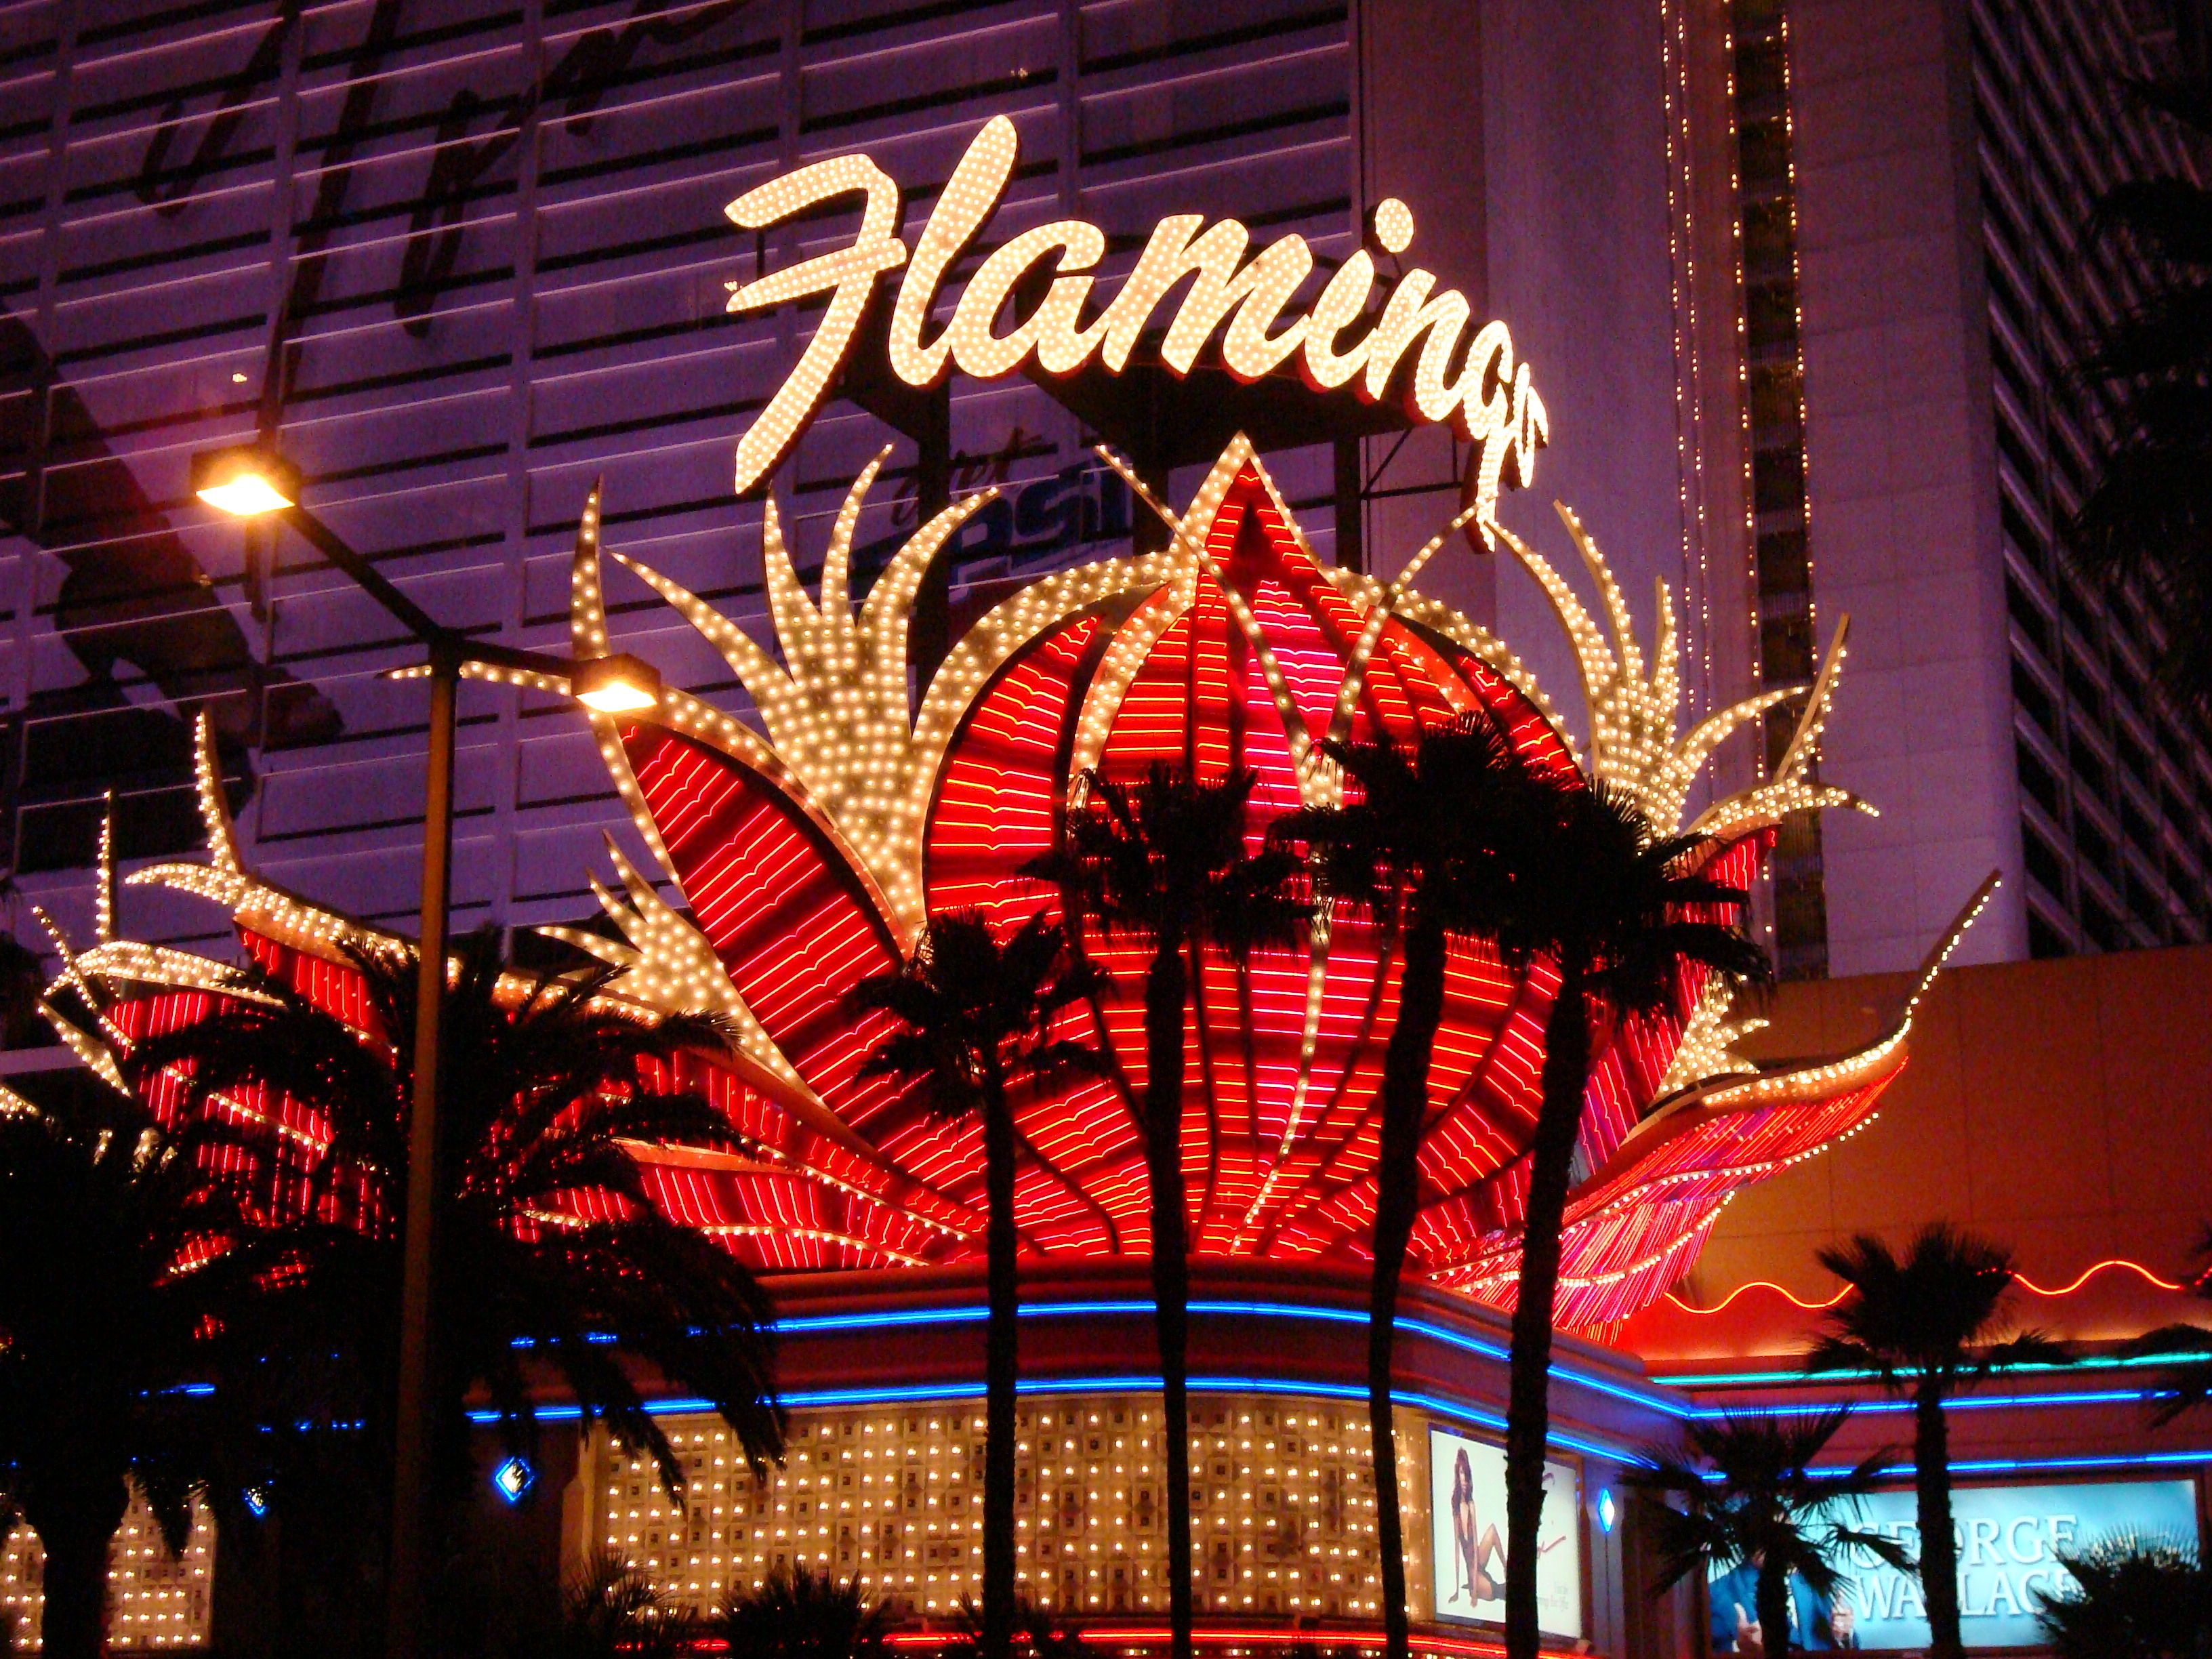 How To Get From Las Vegas Airport To Flamingo Hotel